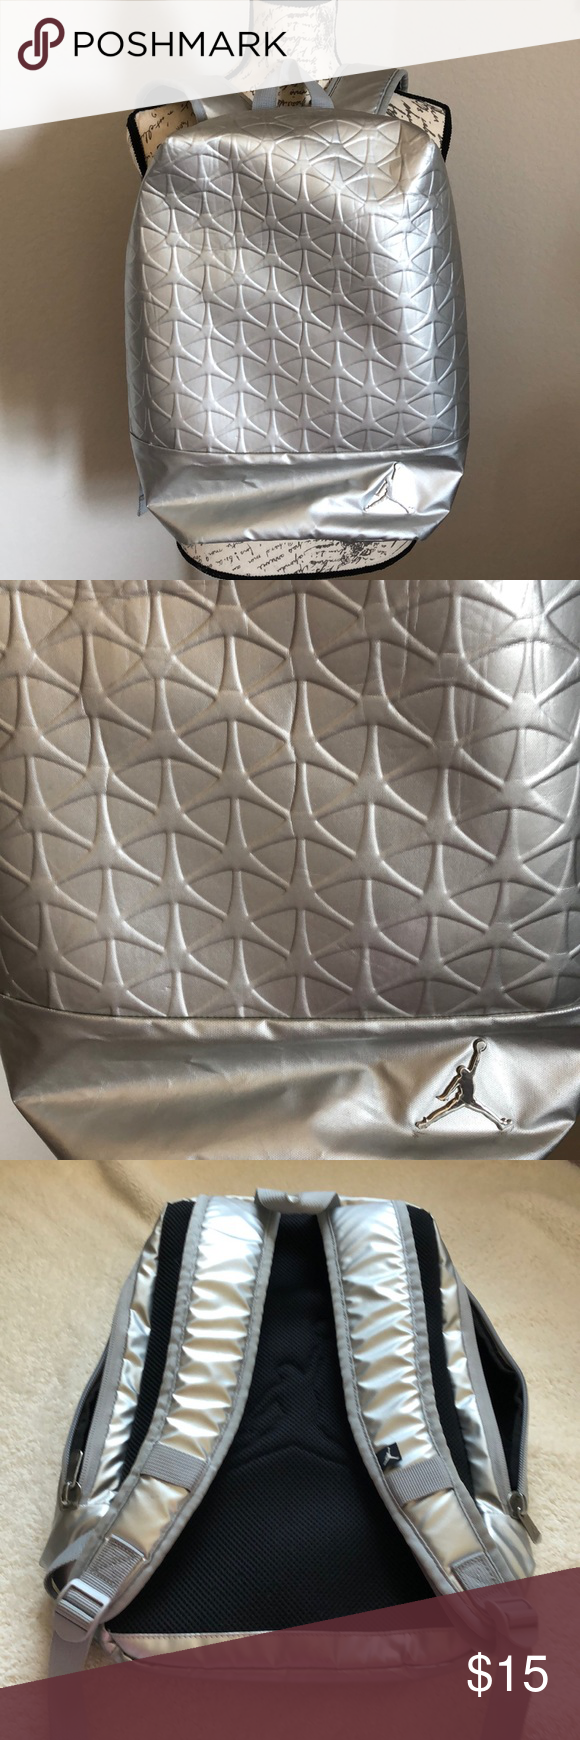 b43642d3caafde 🏀Nike Silver Jordan Backpack🏀 🏀🏀Nike Jordan Silver Backpack🏀🏀EUC.  Please see pictures for any flaws. Great Backpack. Adjustable straps.